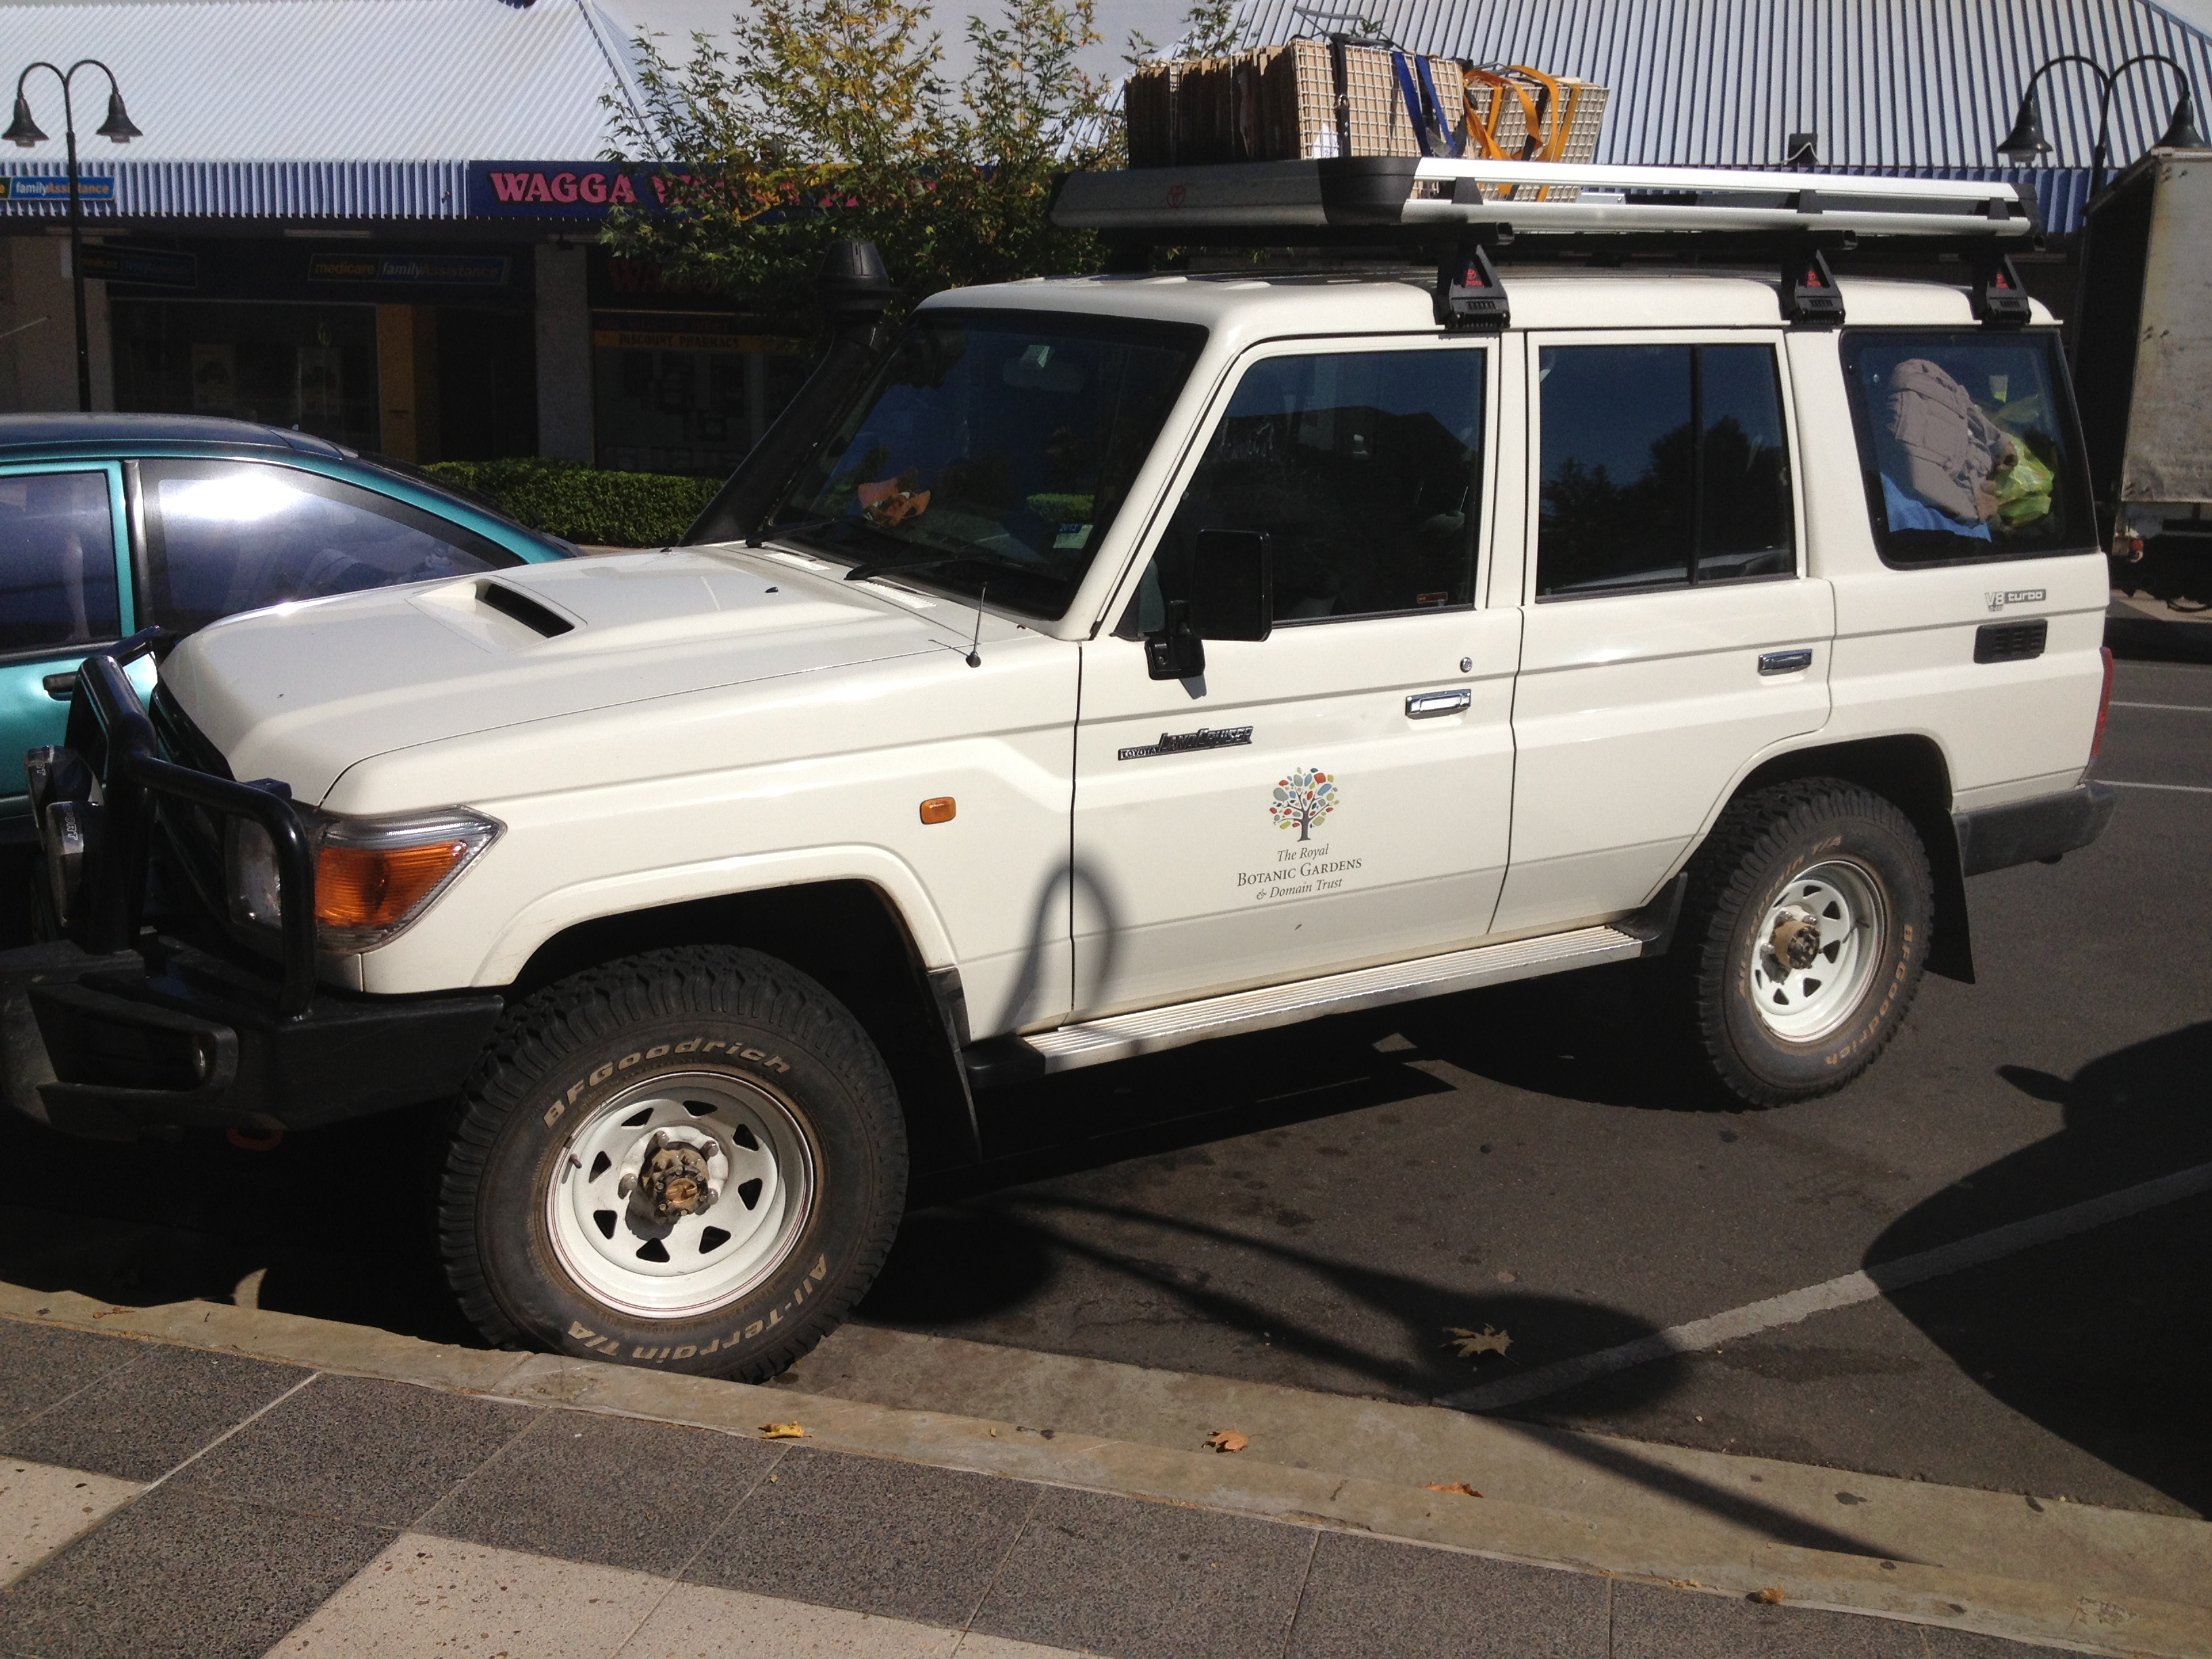 file the royal botanic gardens domain trust toyota land cruiser 4x4 parked in baylis st wagga. Black Bedroom Furniture Sets. Home Design Ideas